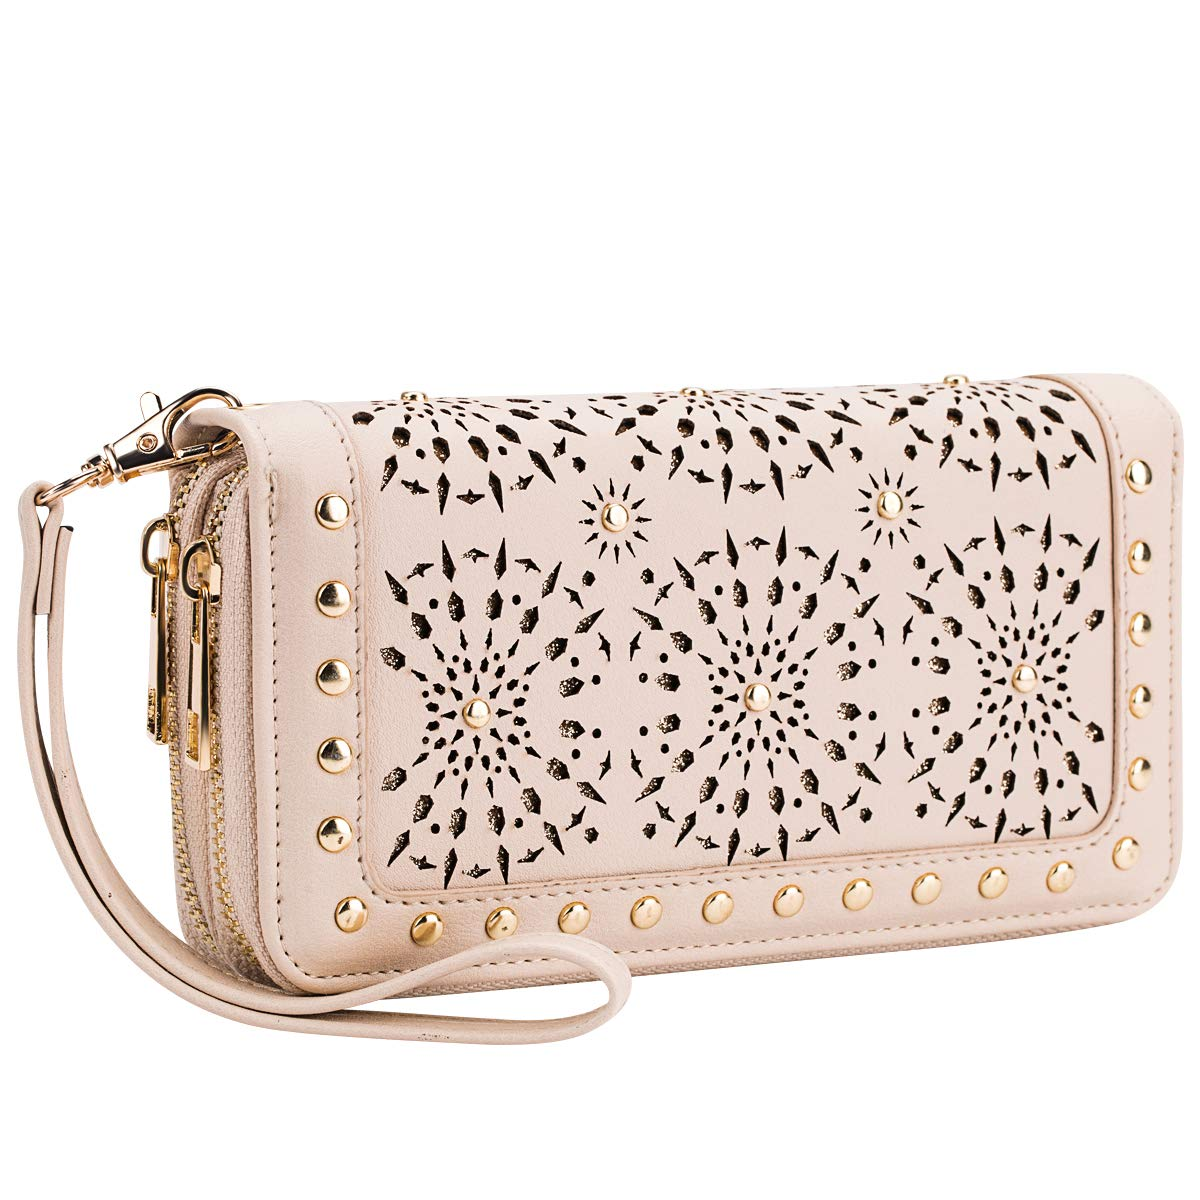 Heaye Unicorn Wallet Hollow Floral Wristlet Zip Around Pouch with Perforated Stud